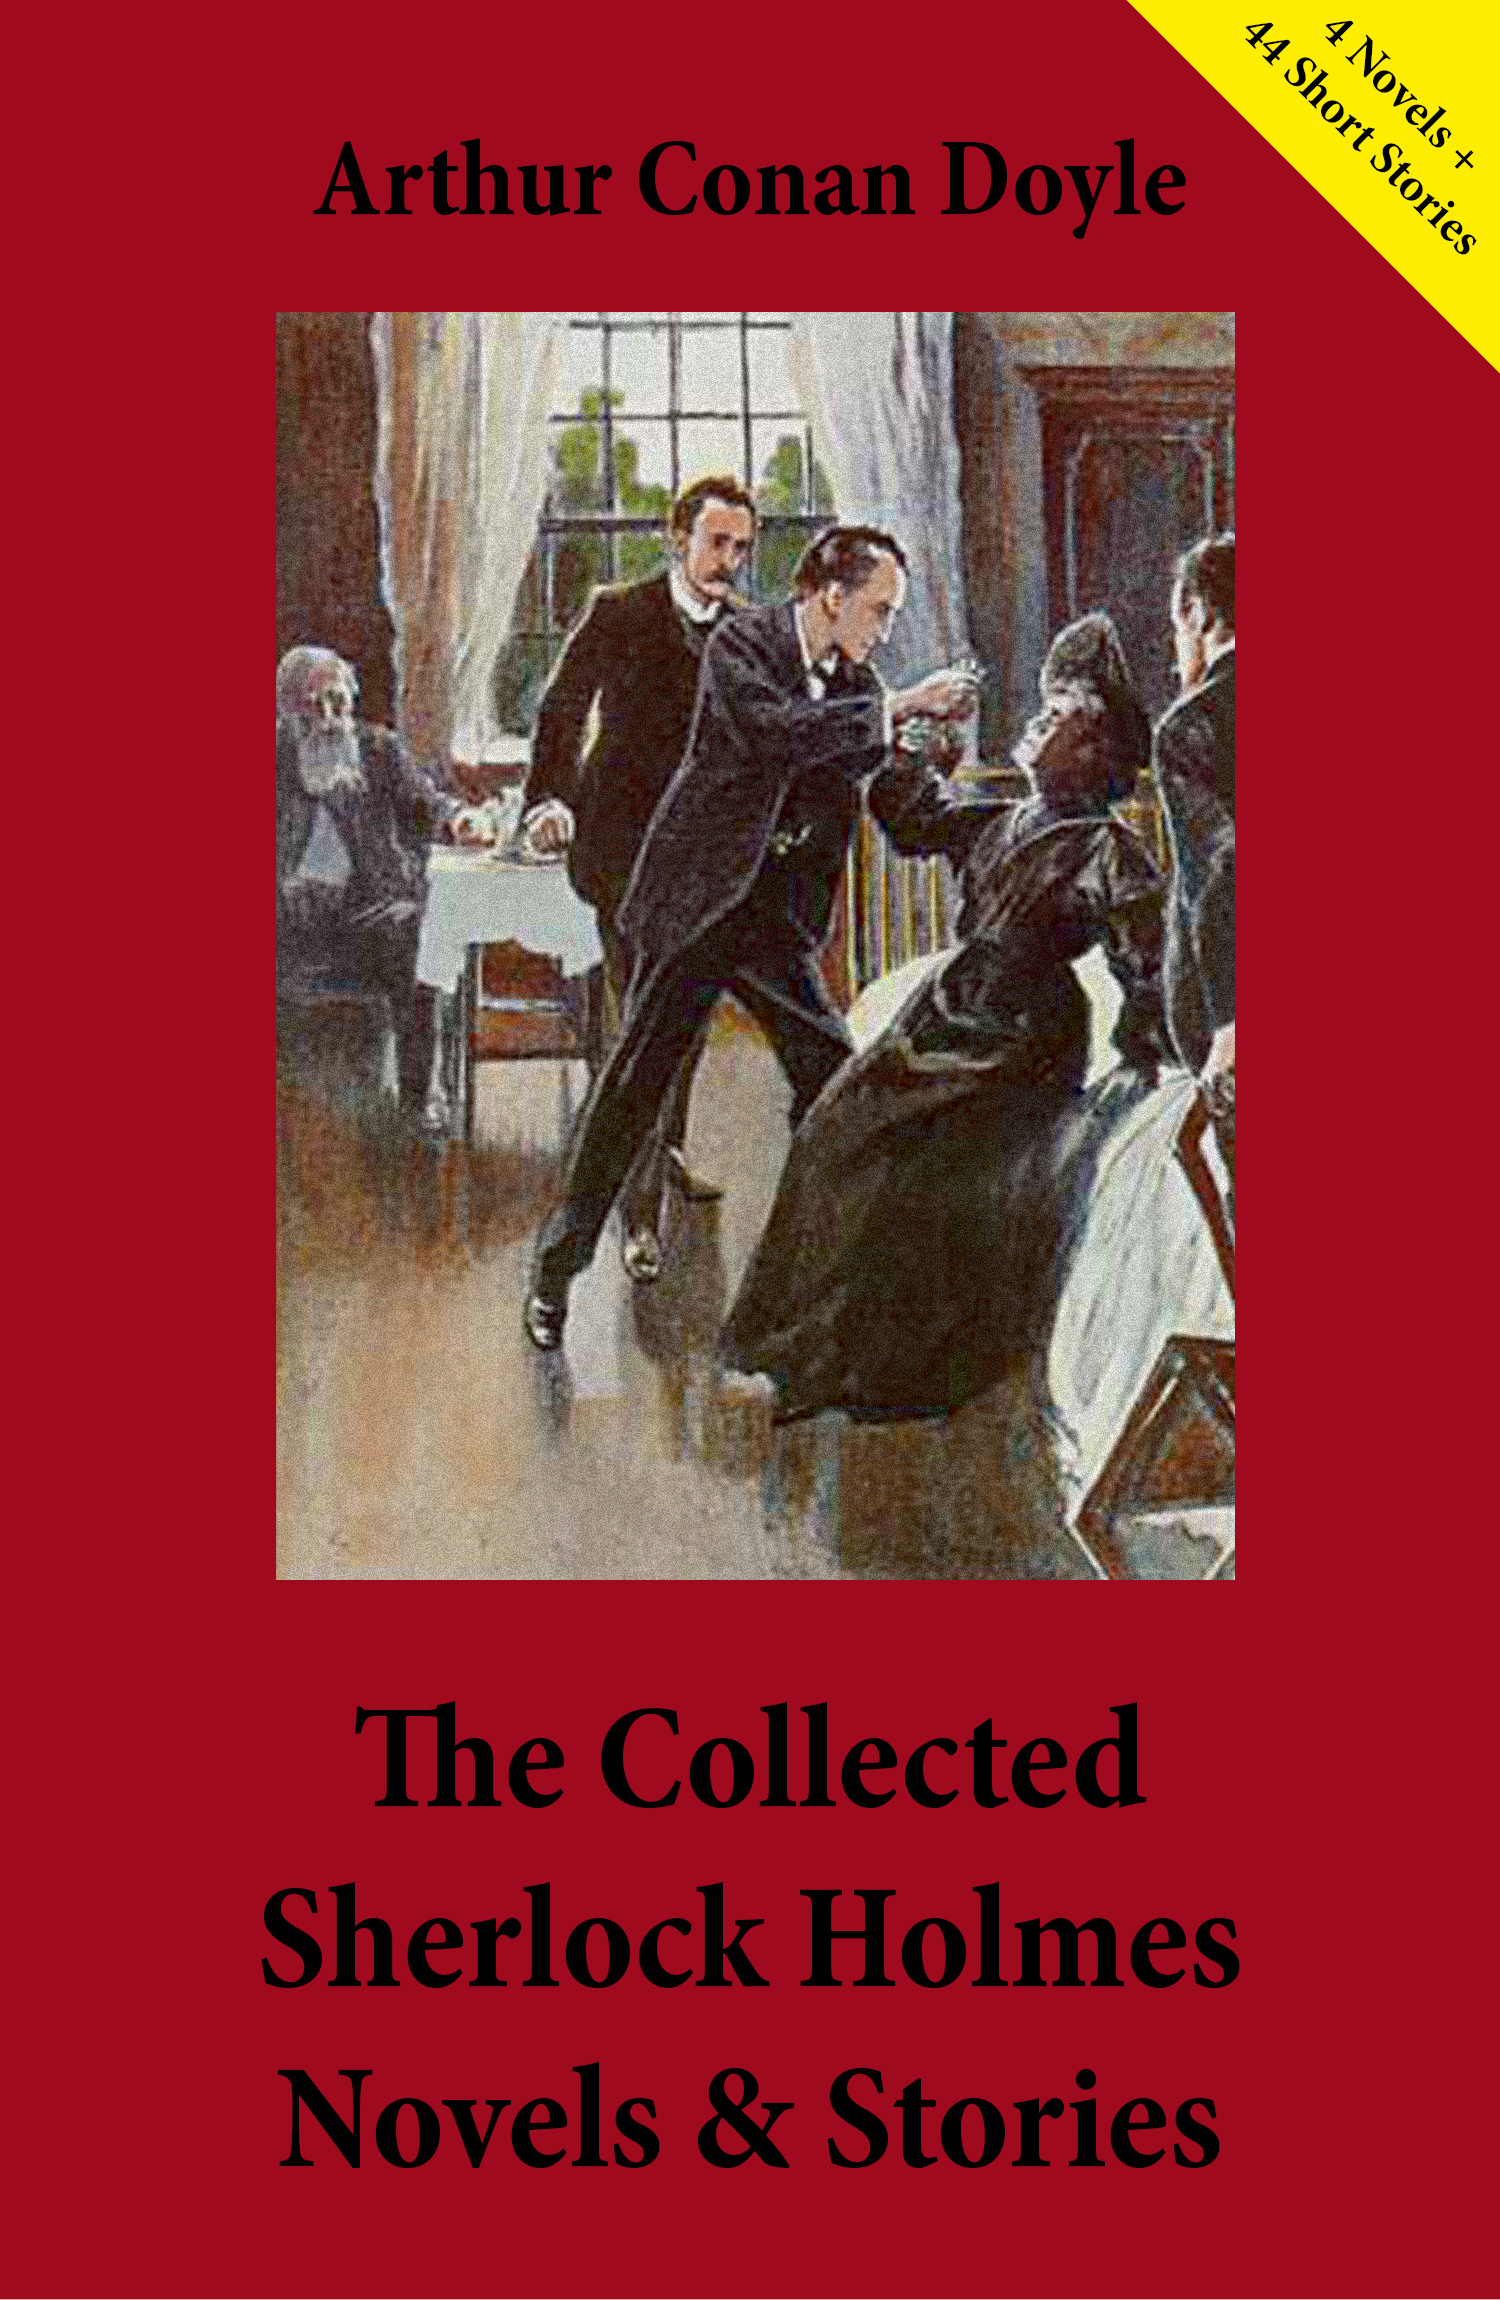 The Collected Sherlock Holmes Novels & Stories (4 Novels + 44 Short Stories)